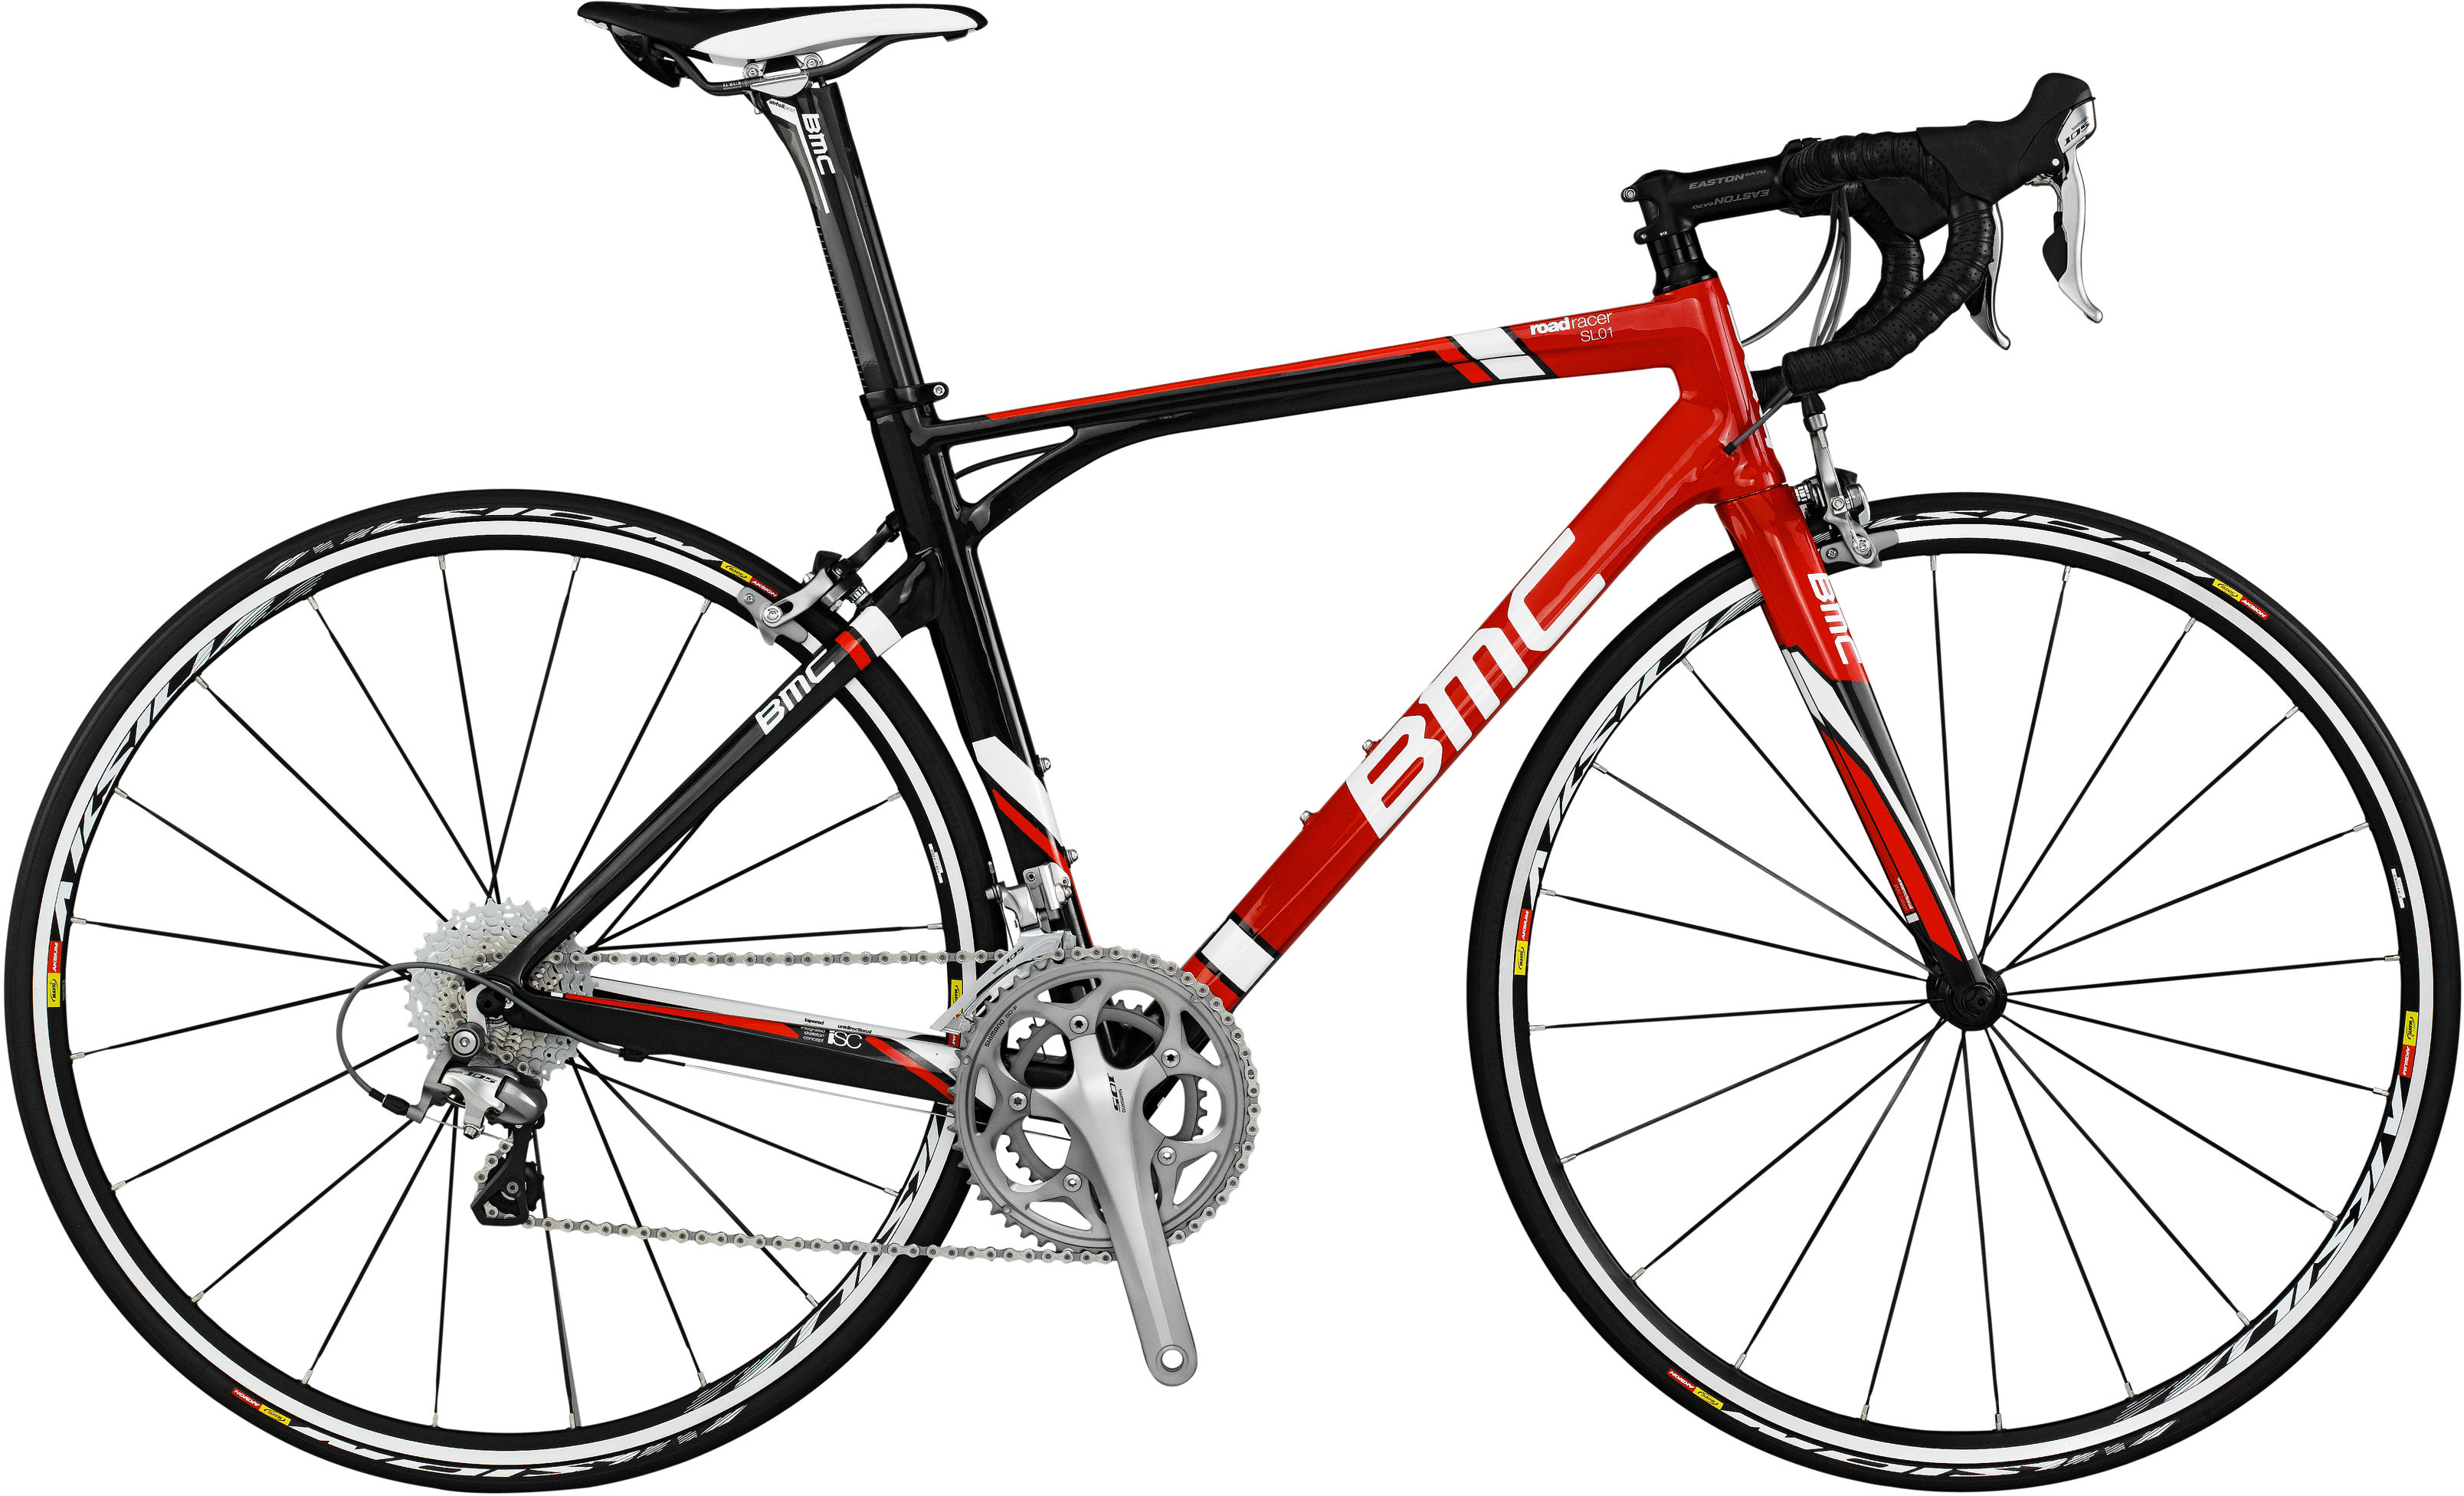 Bmc Roadracer Sl01 105 Compact 2013 Review The Bike List